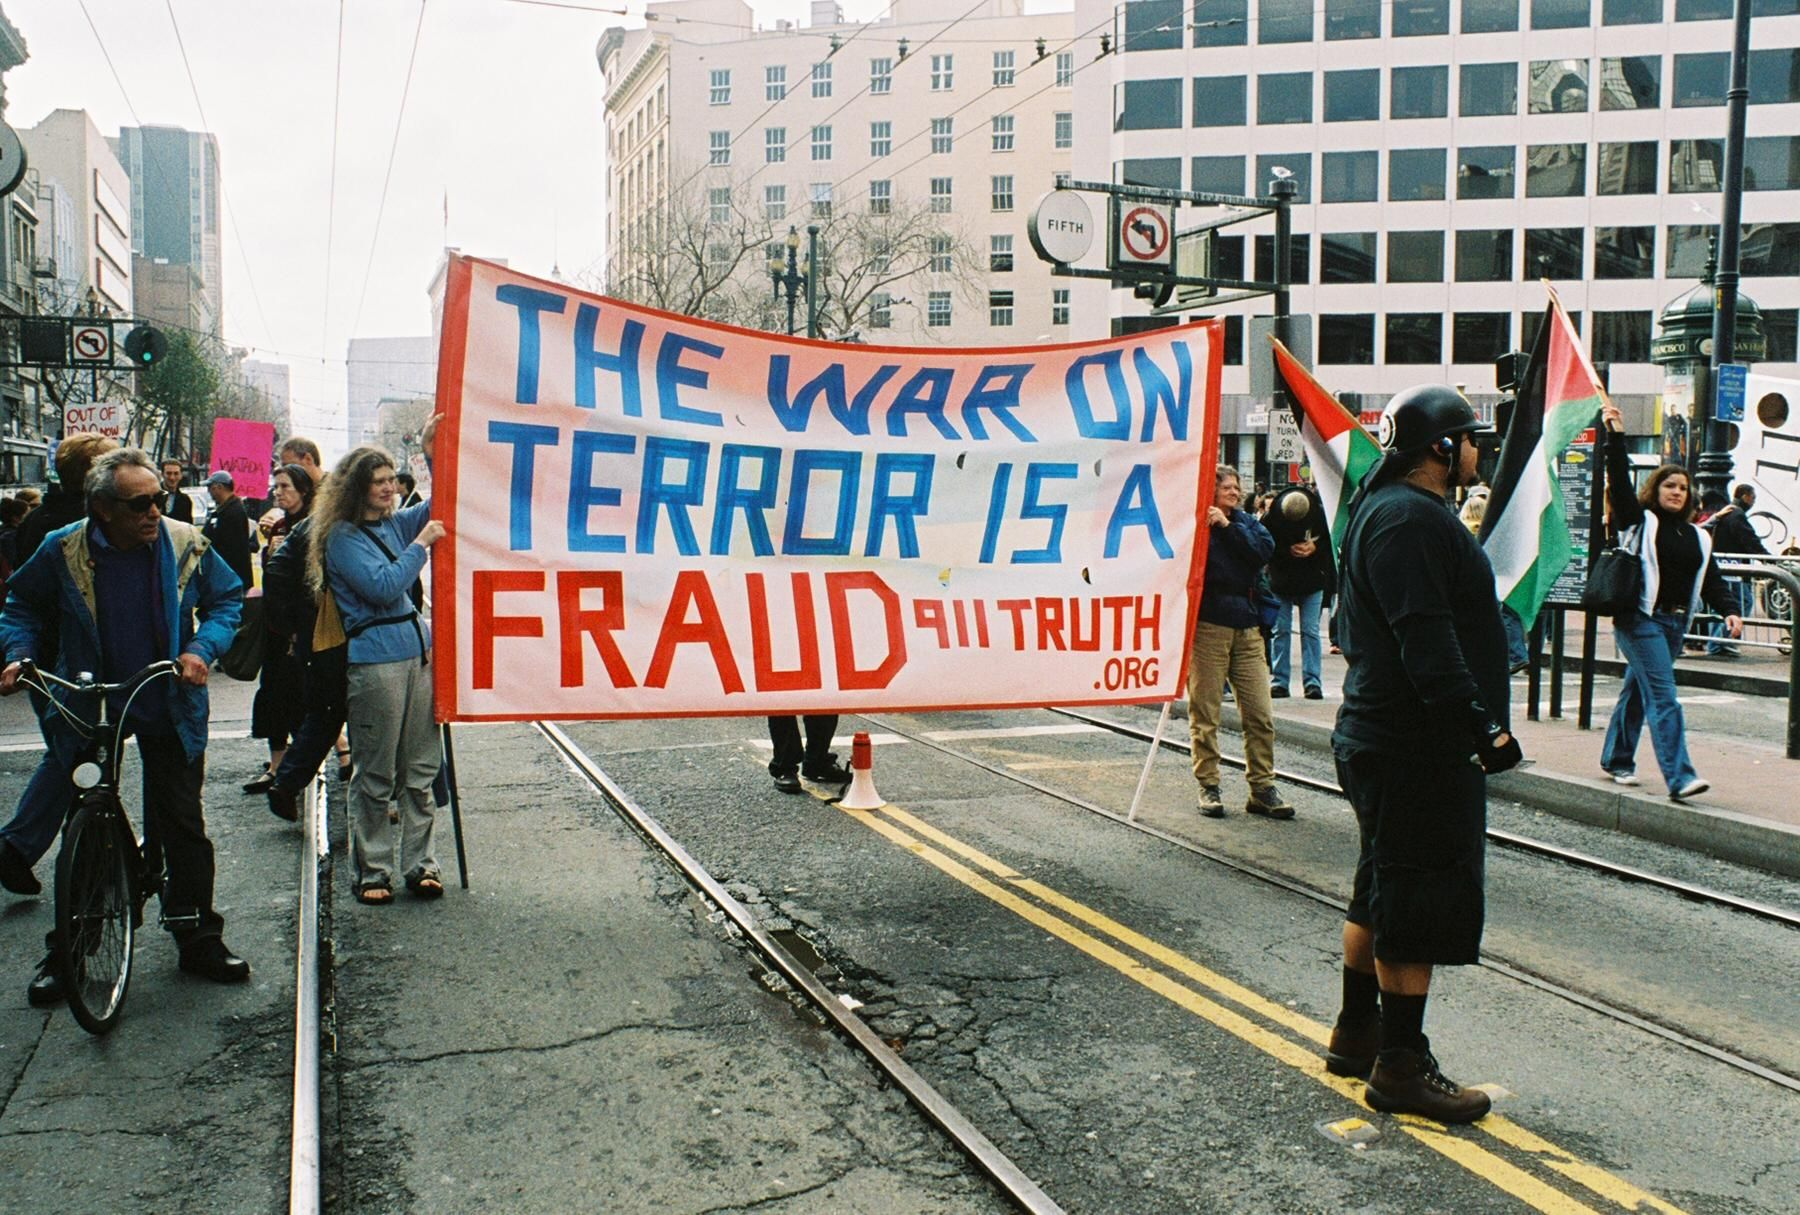 causes of the war on terror The 'war on terror' has had a pernicious impact on american democracy, on america's psyche and on us standing in the world.